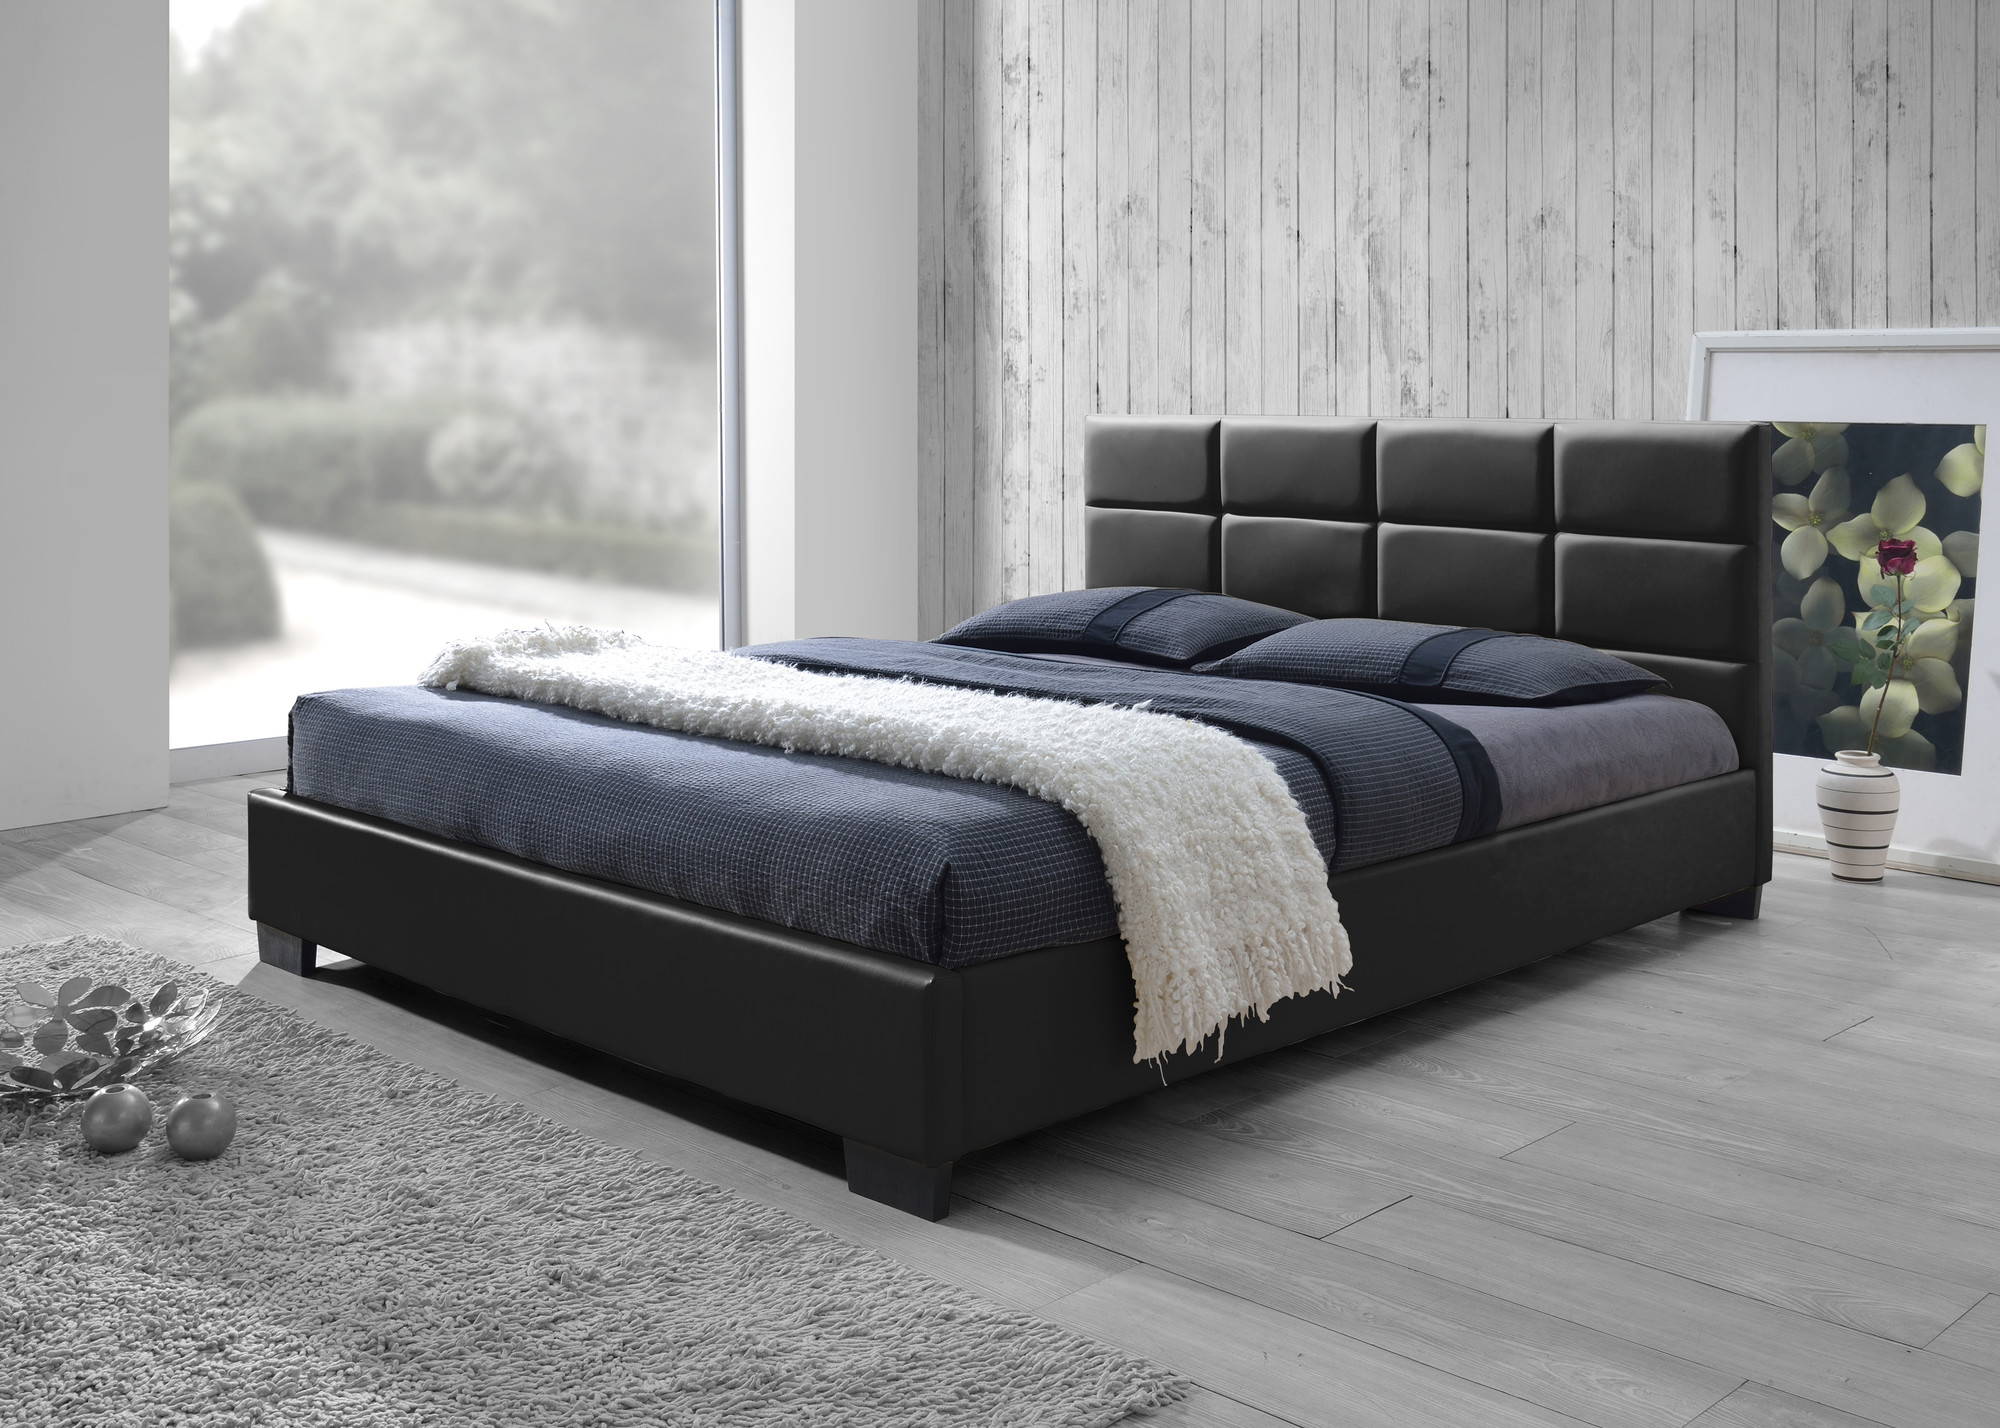 sku # iqki1034 pu liam upholstered queen-size bed frame is sometimes also listed RZSGDUB